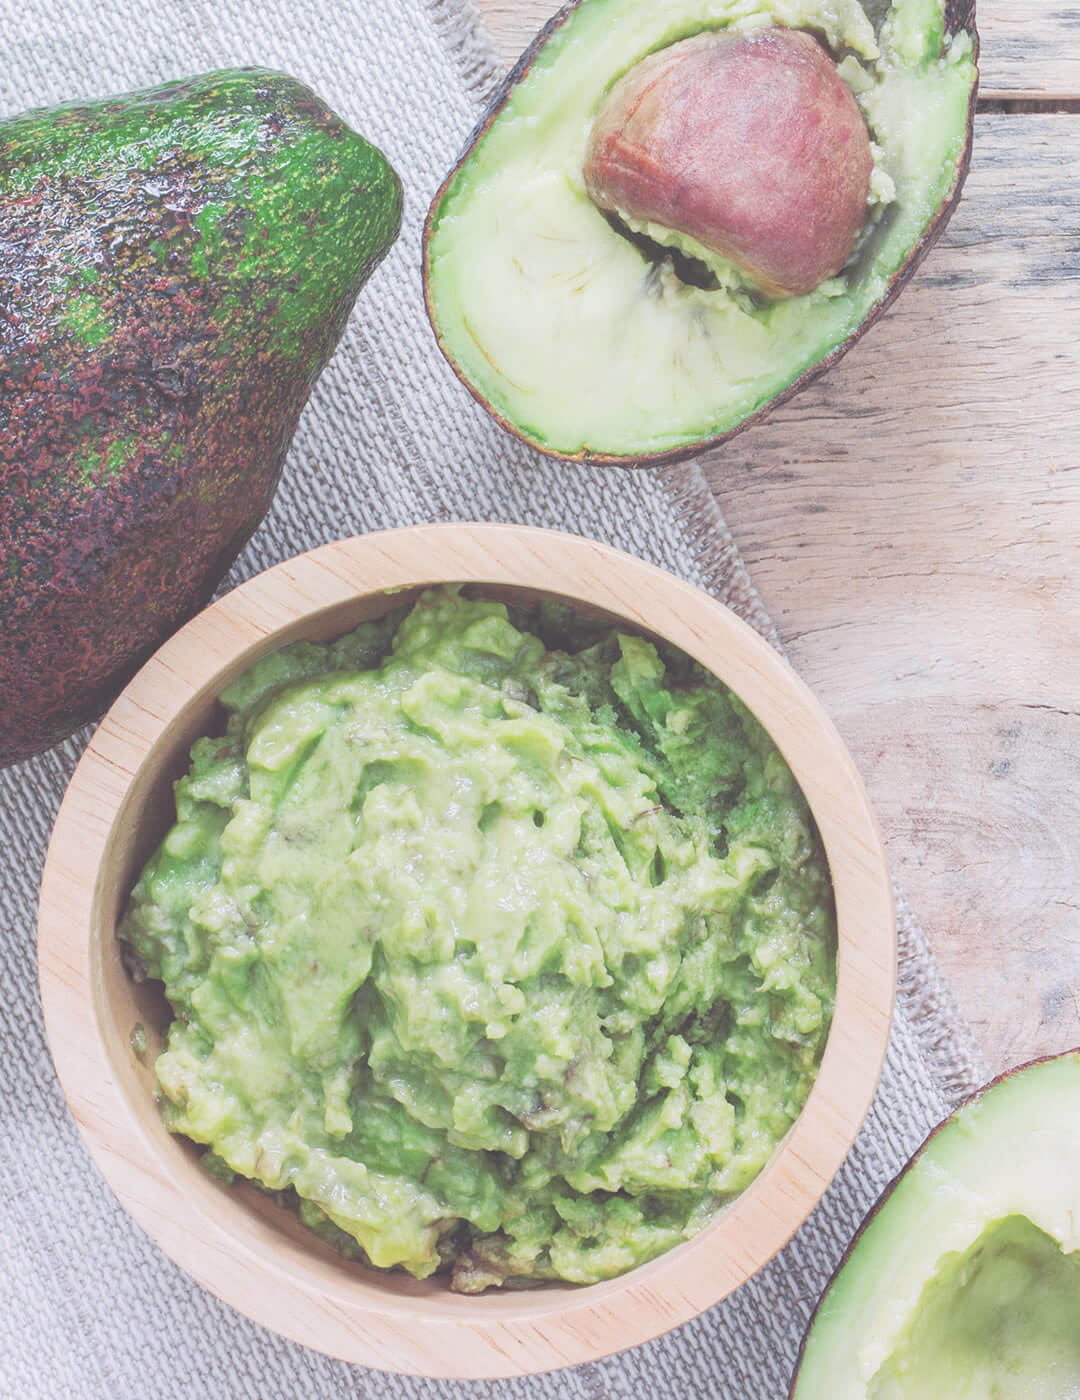 mashed avocado as one of the home remedies for dry and frizzy hair